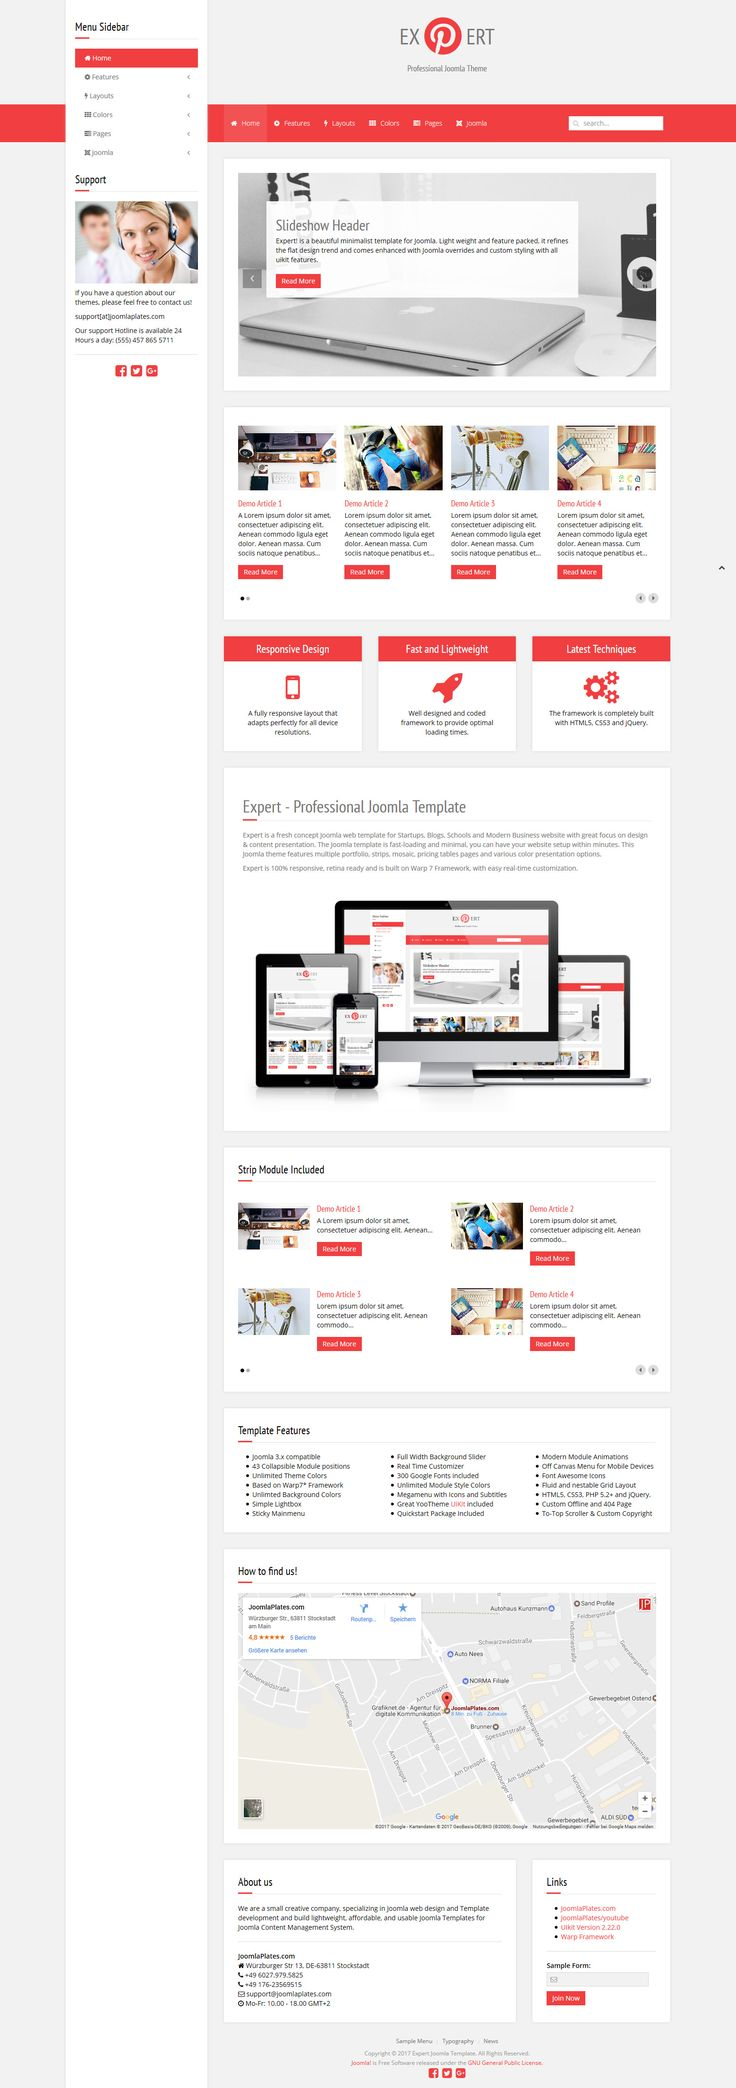 Expert is a fresh concept Joomla web template for Startups, Blogs, Schools and Modern Business